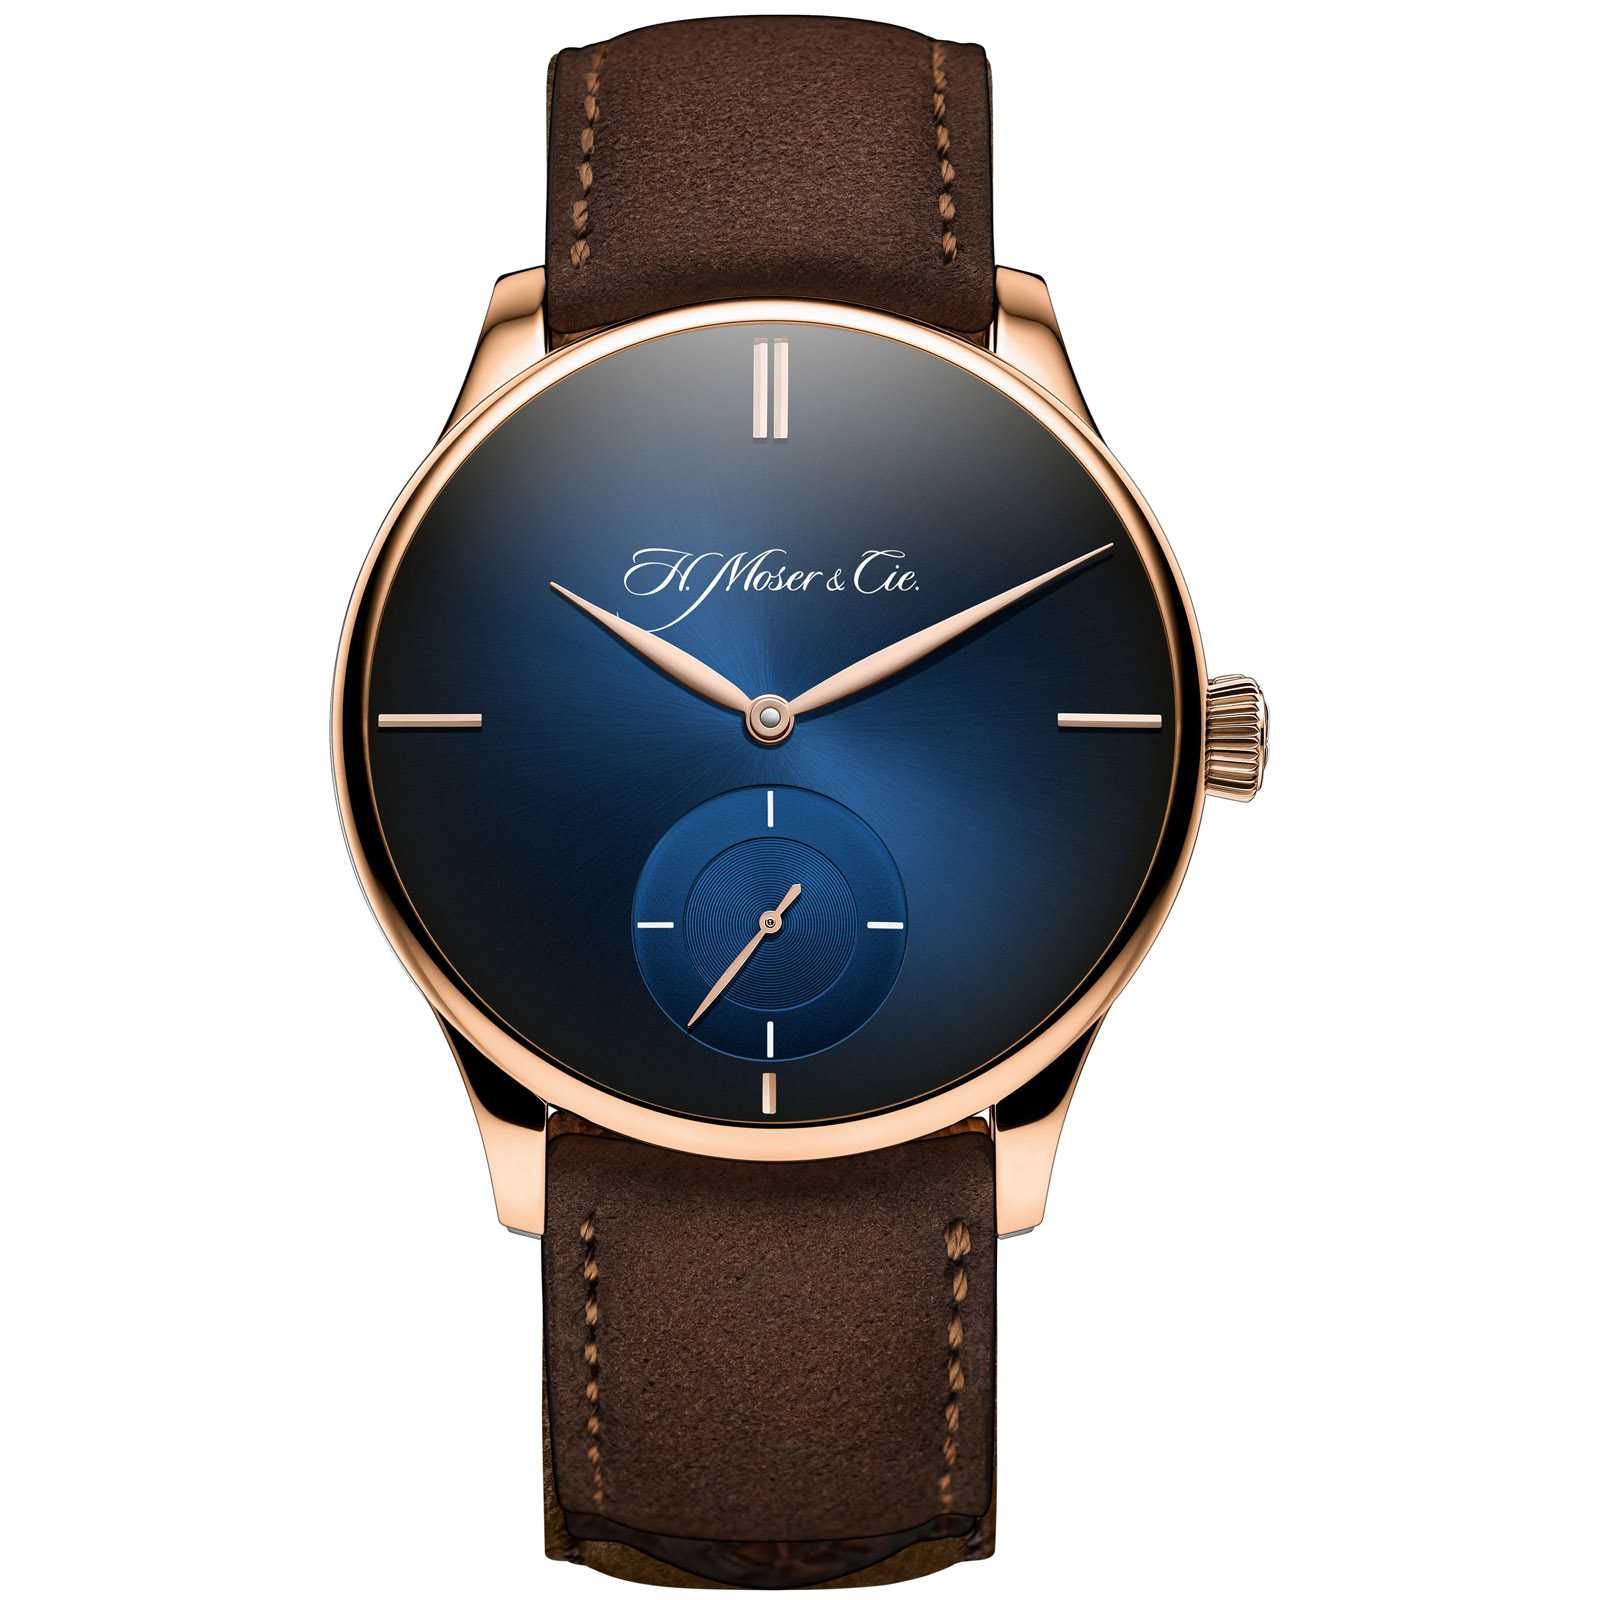 H. Moser & Cie Venturer Small Seconds XL Limited Edition Watch